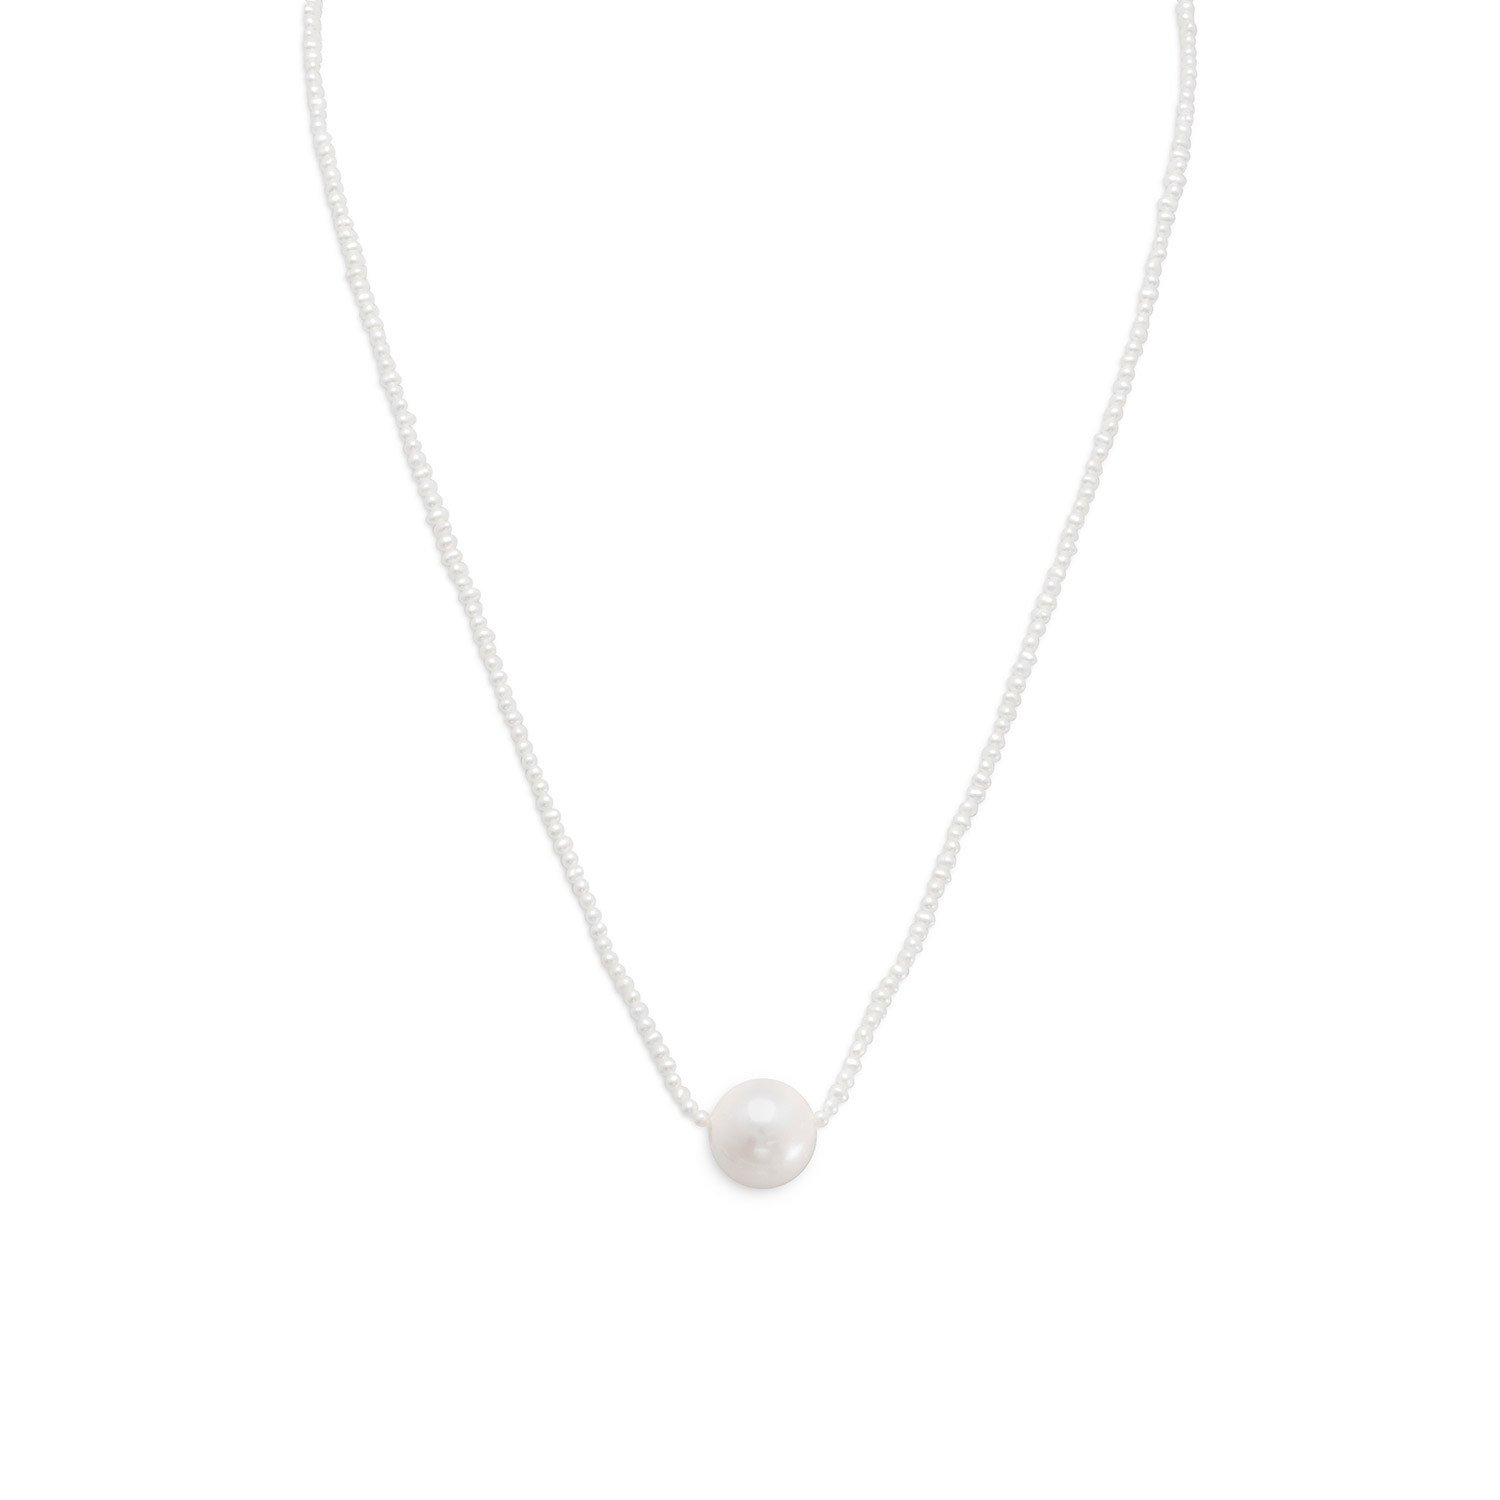 16″ + 1″ Cultured Freshwater Pearl Necklace